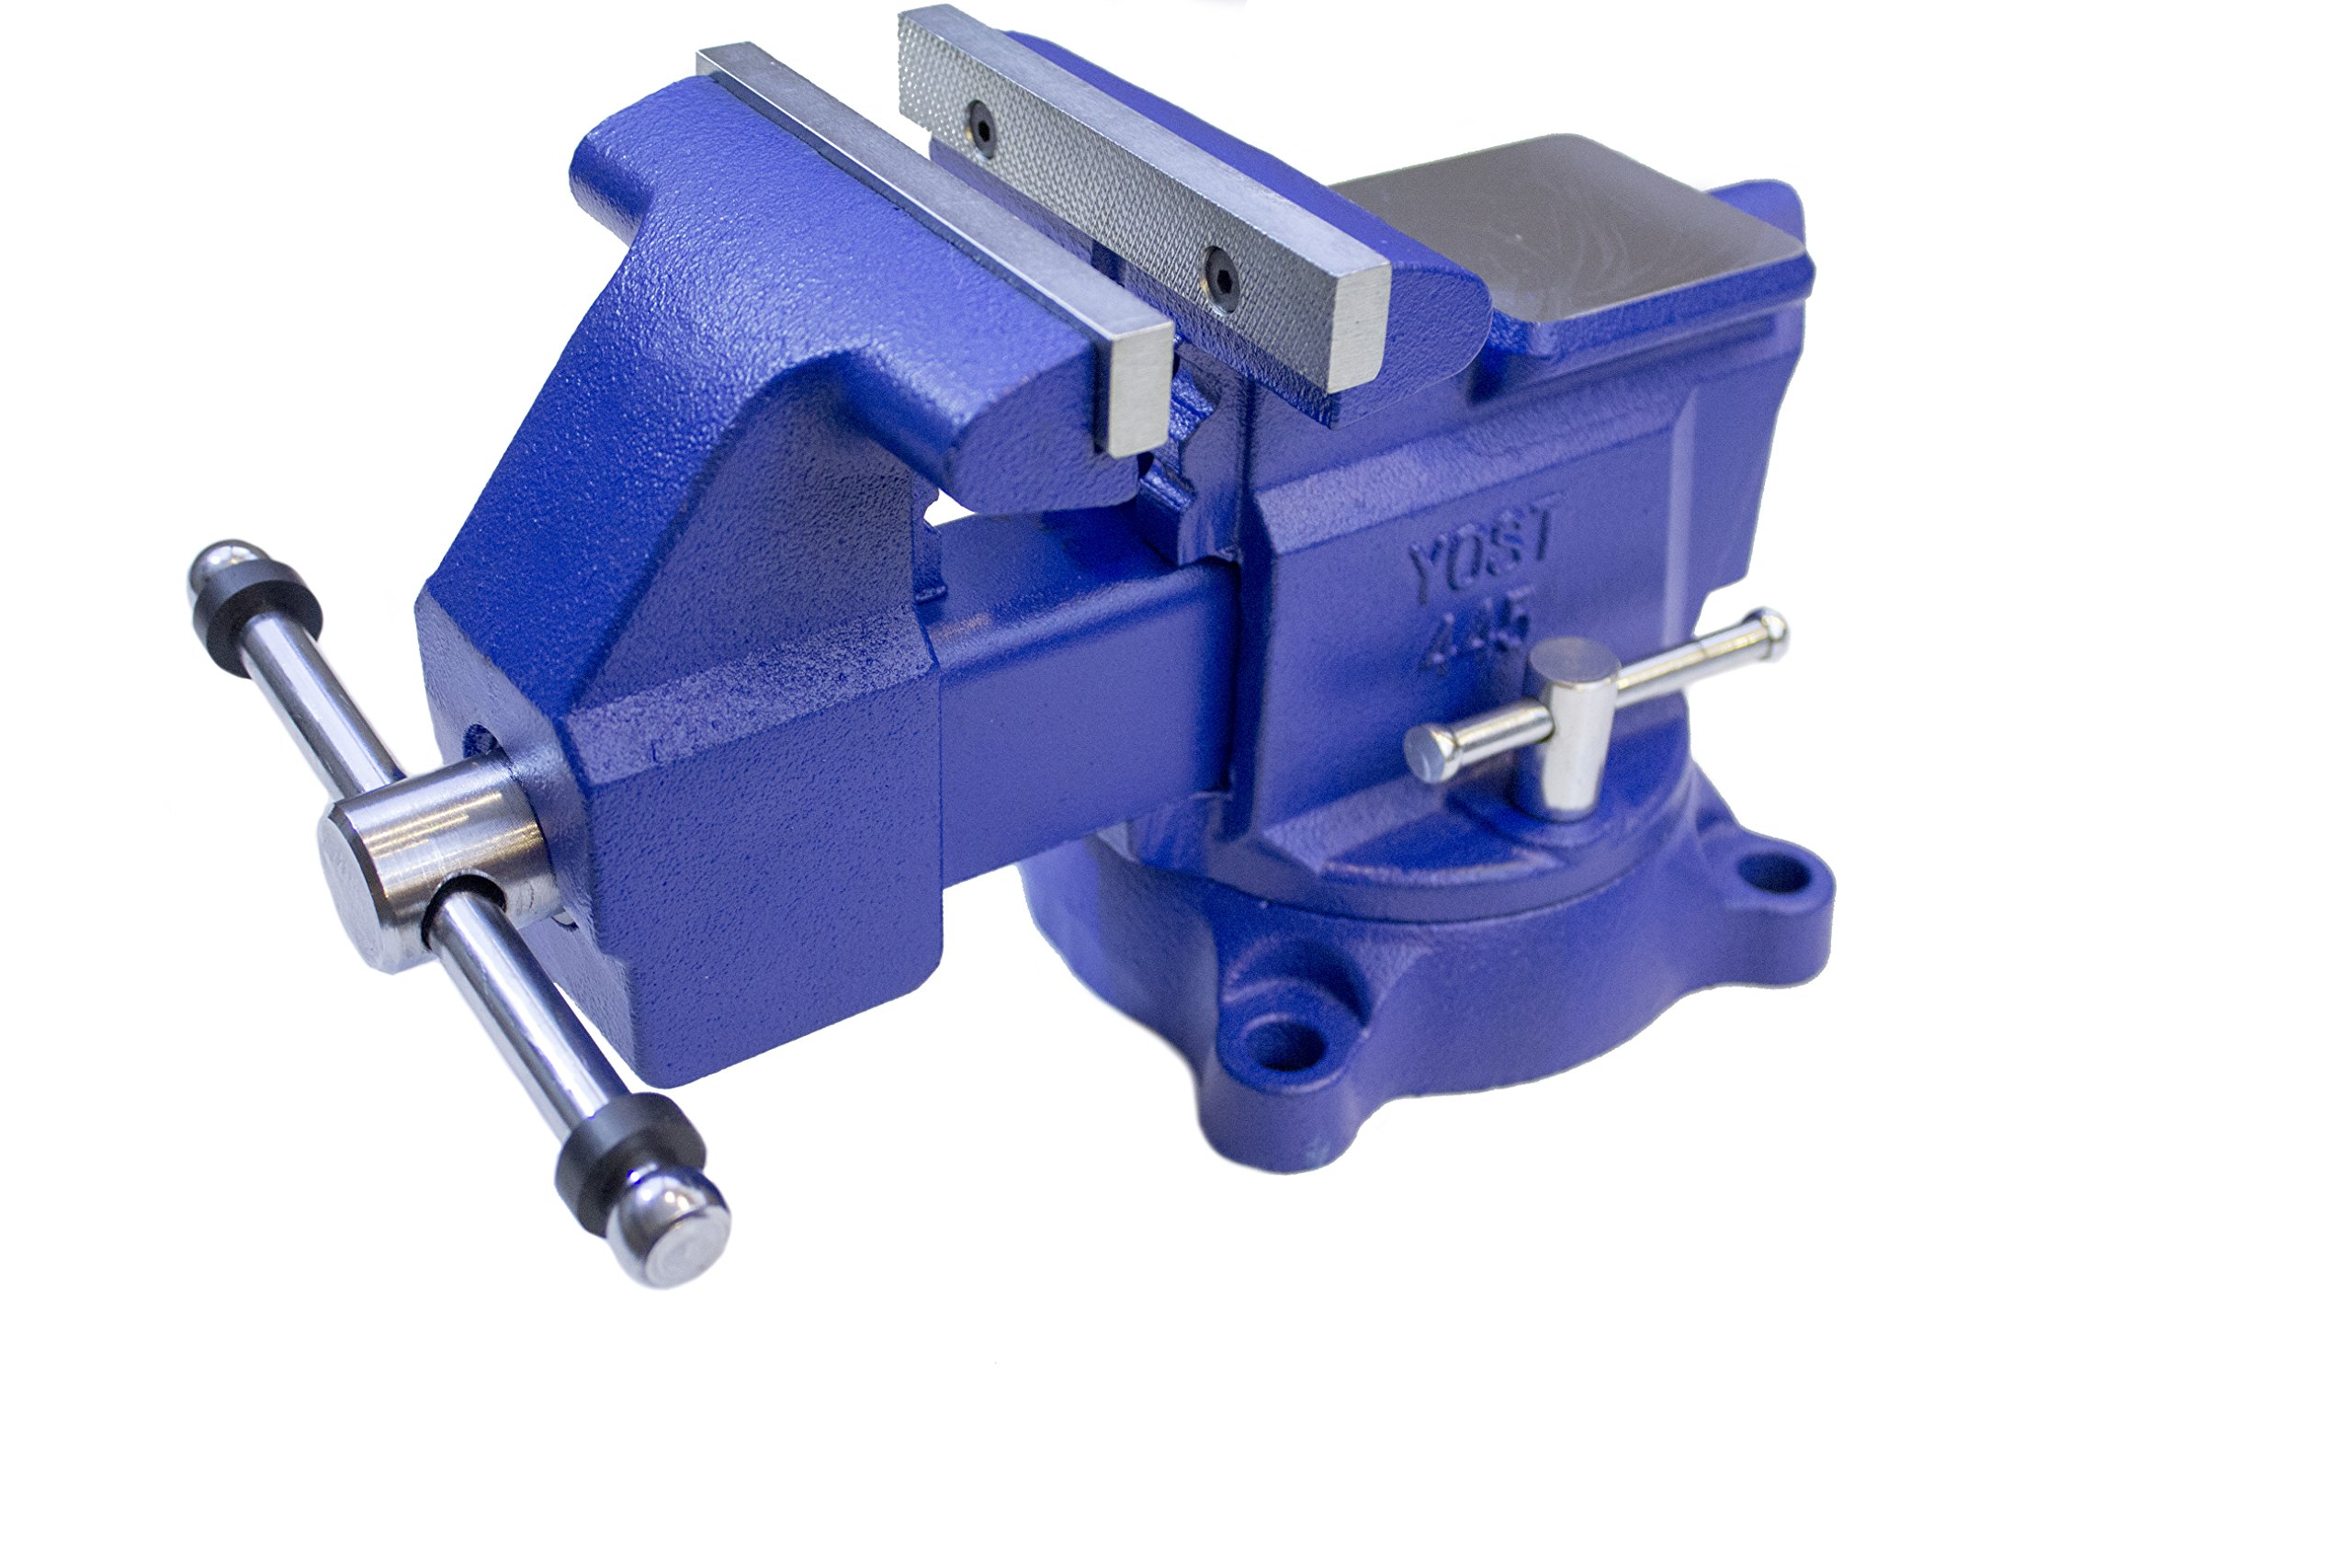 Yost Vises 480 8'' Heavy Duty Utility Combination Pipe and Bench Vise